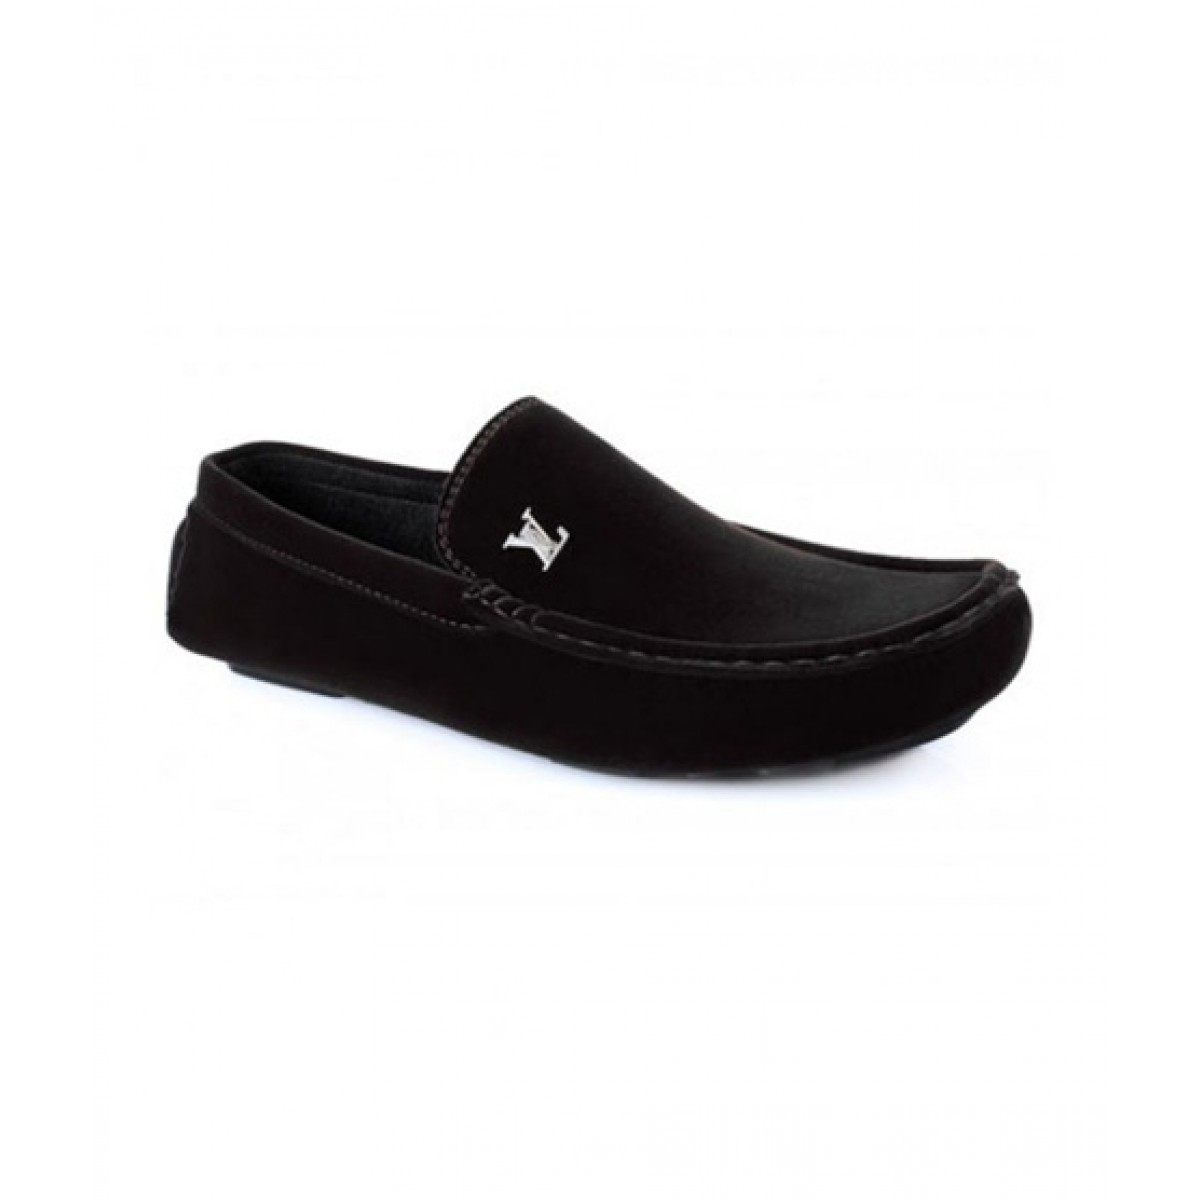 lv shoes price